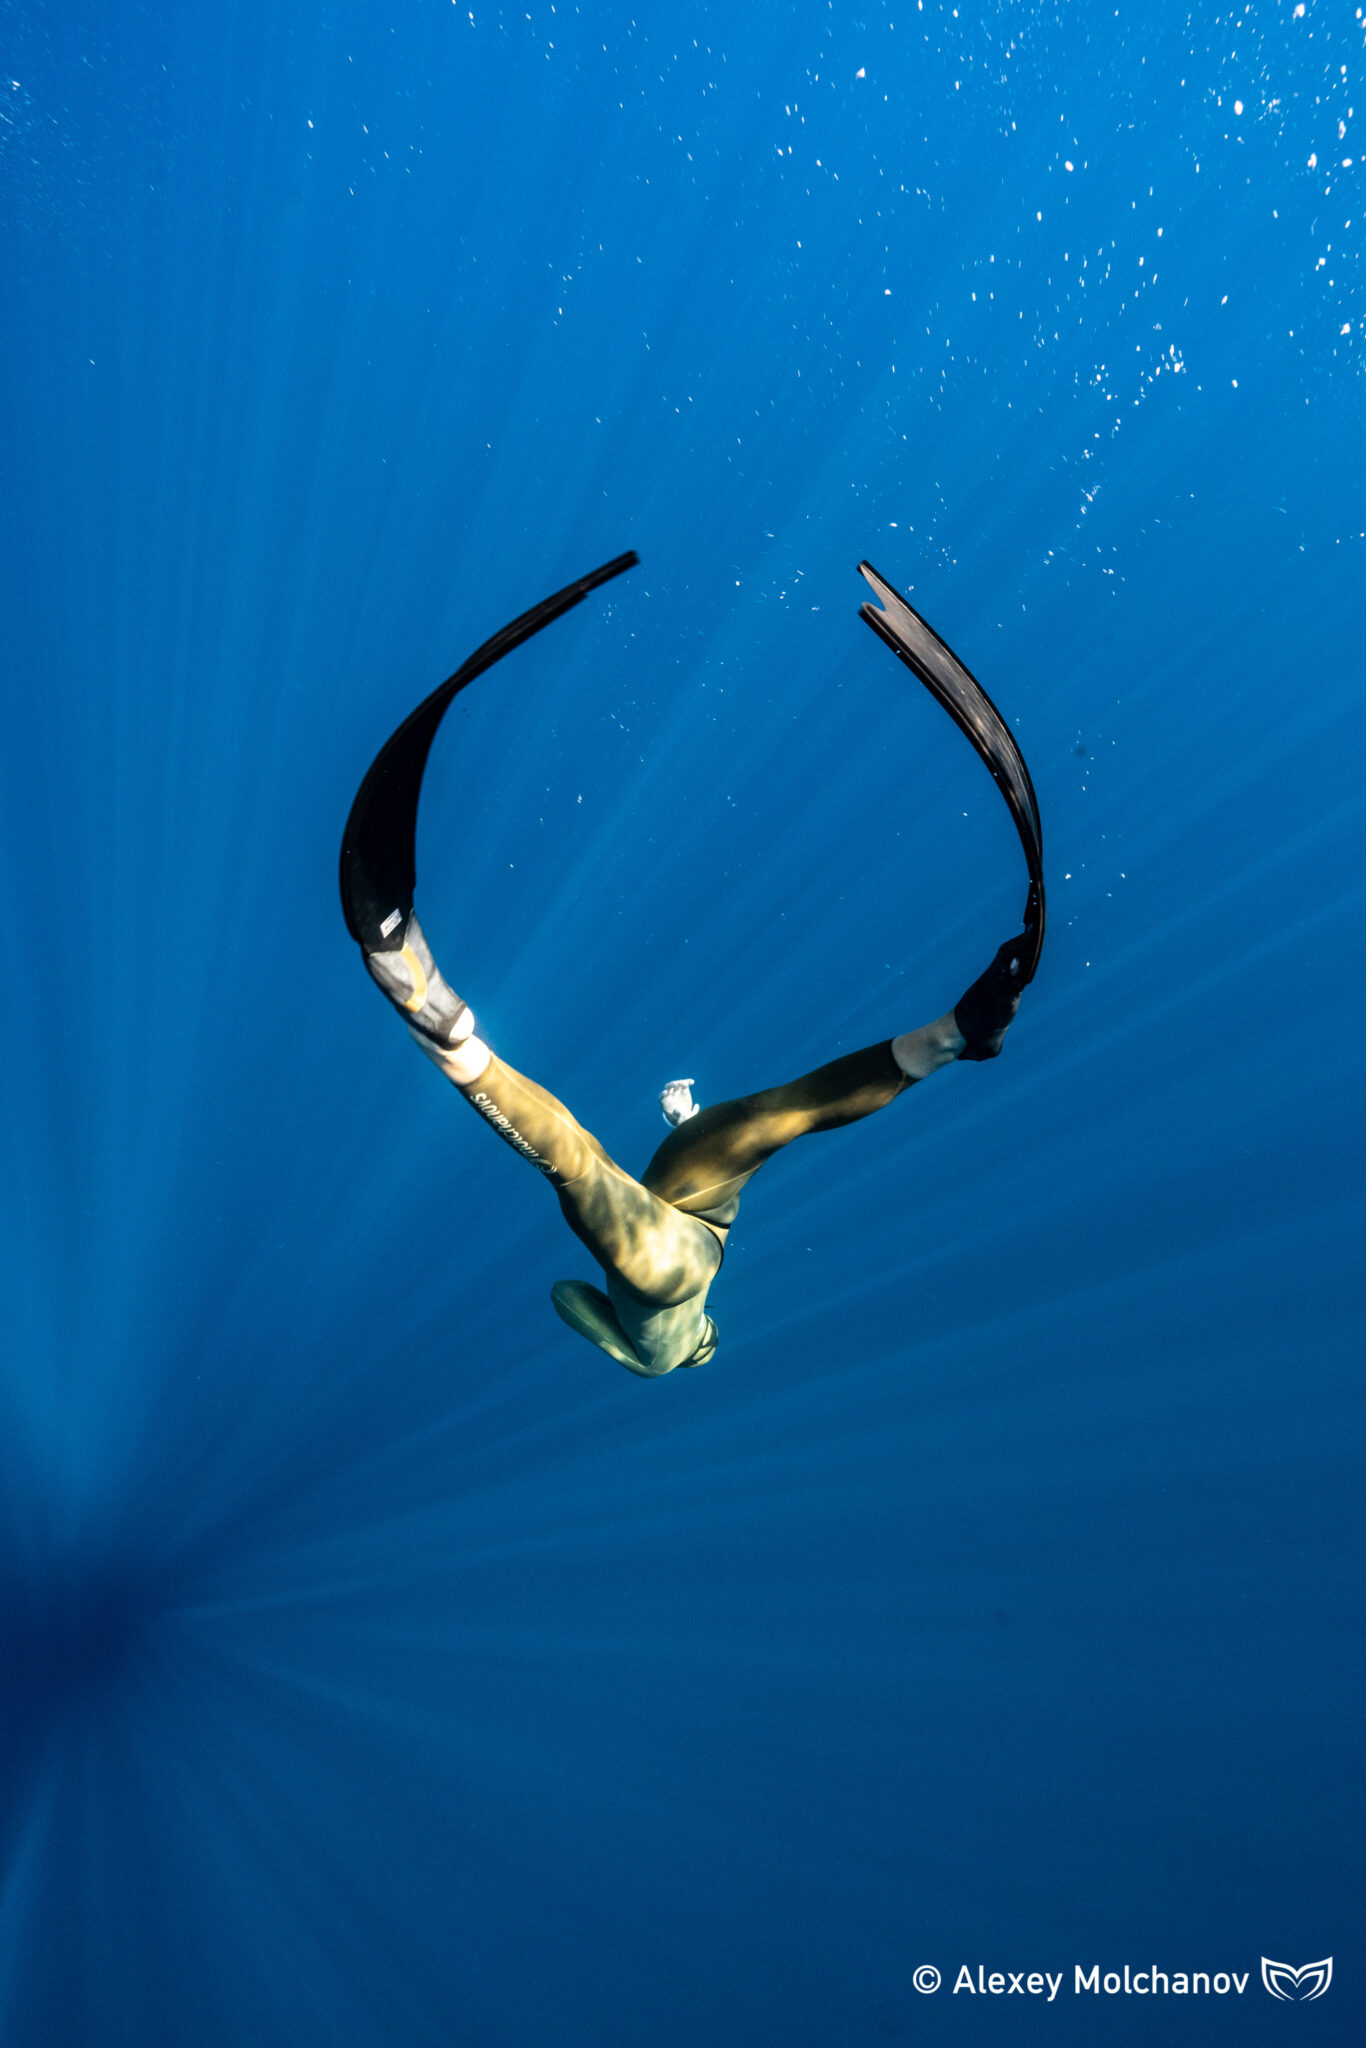 Experience freediving